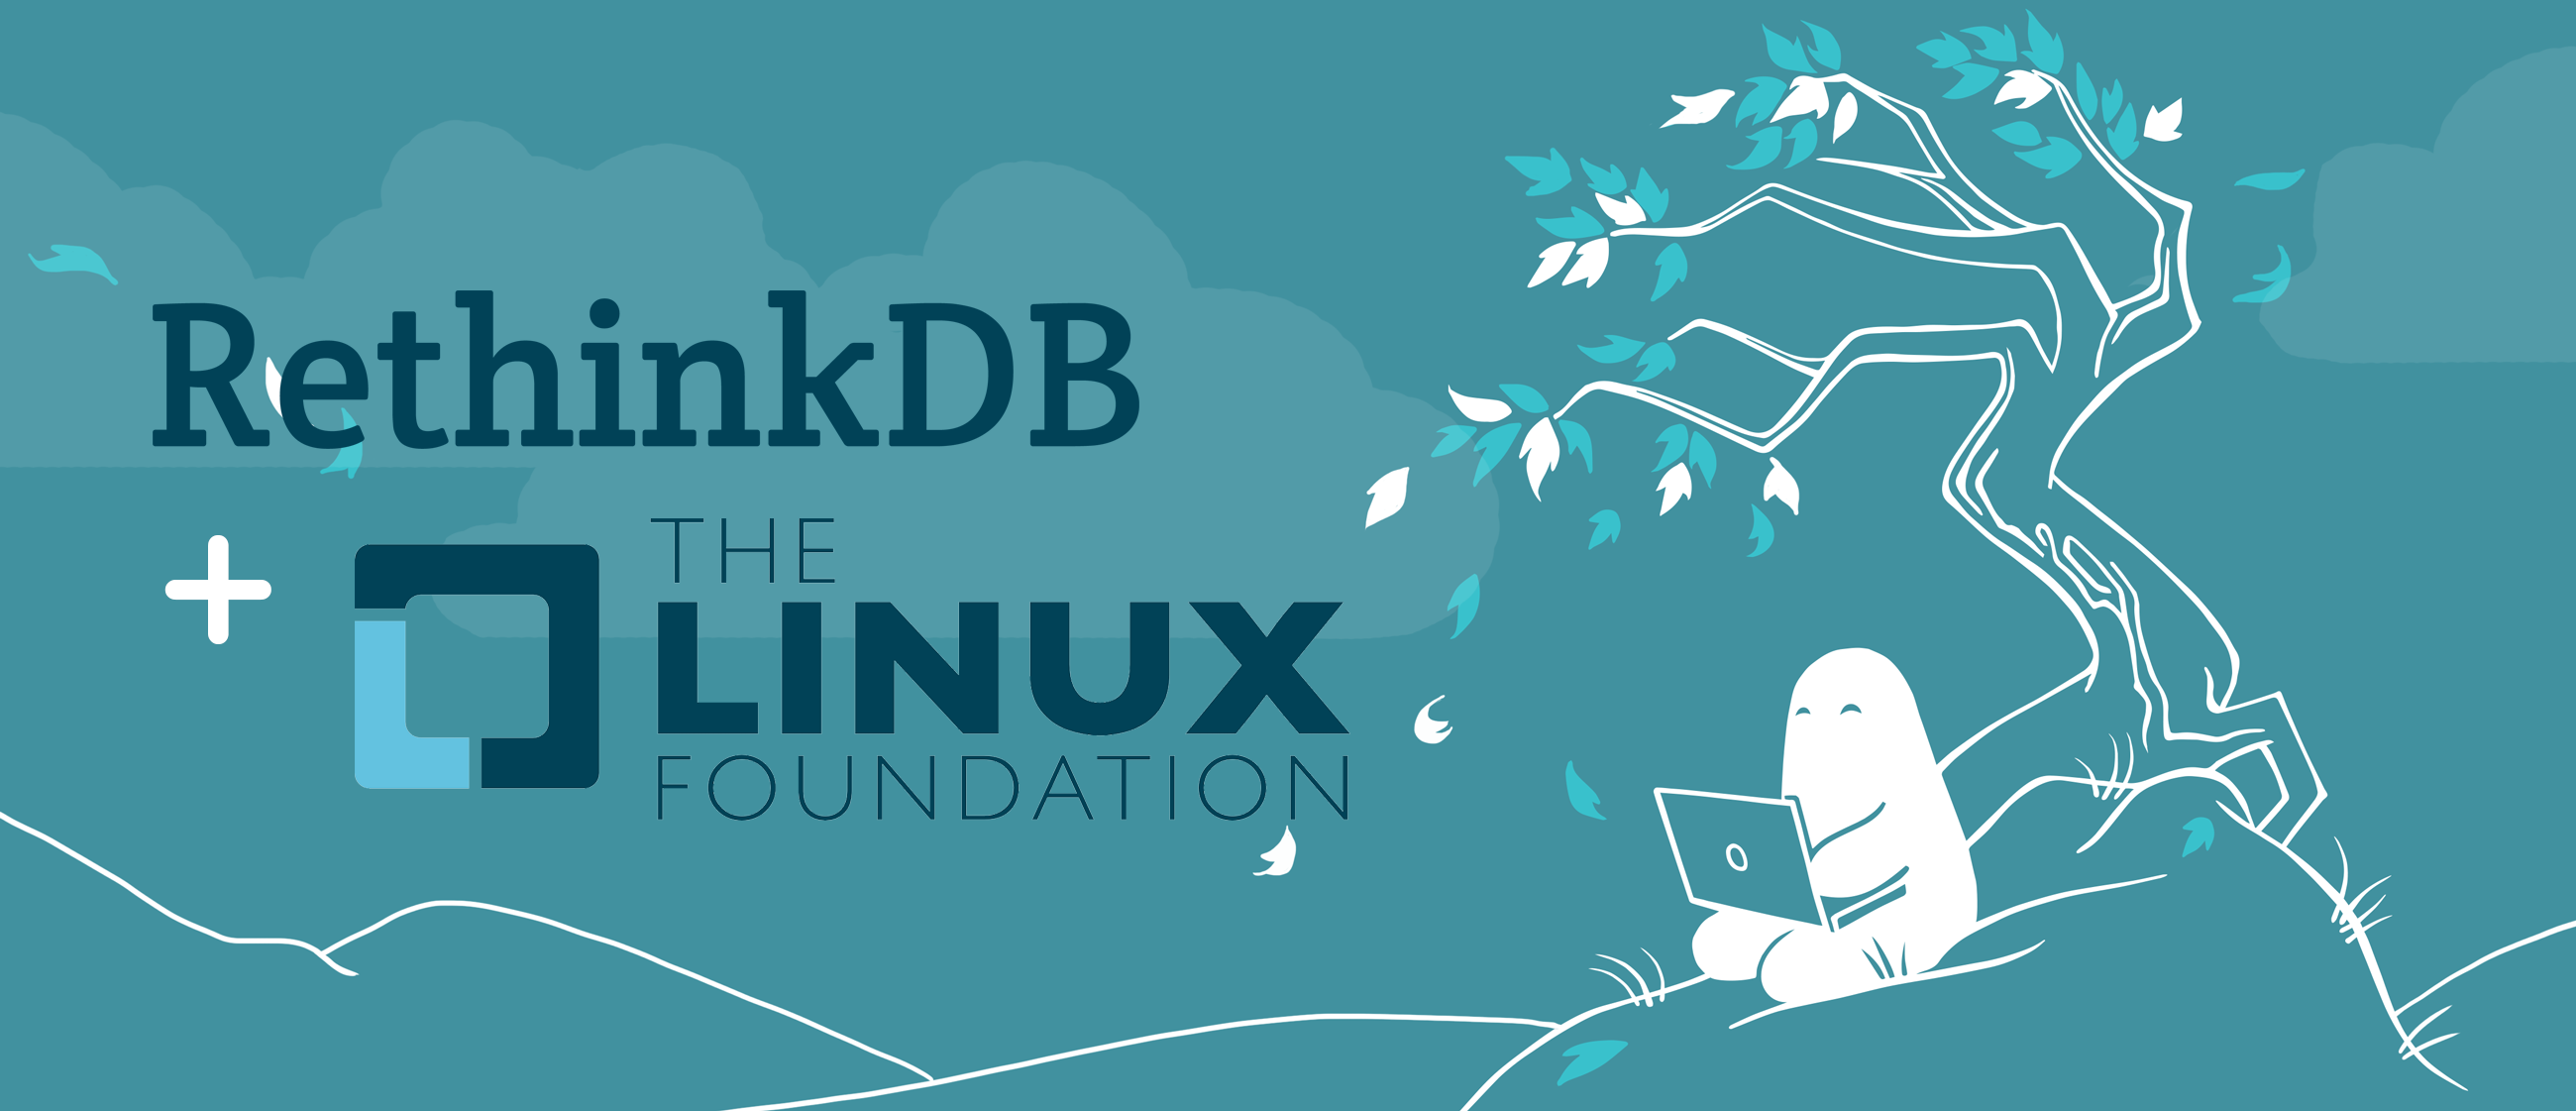 RethinkDB Real-time Database Finds New Home and New License